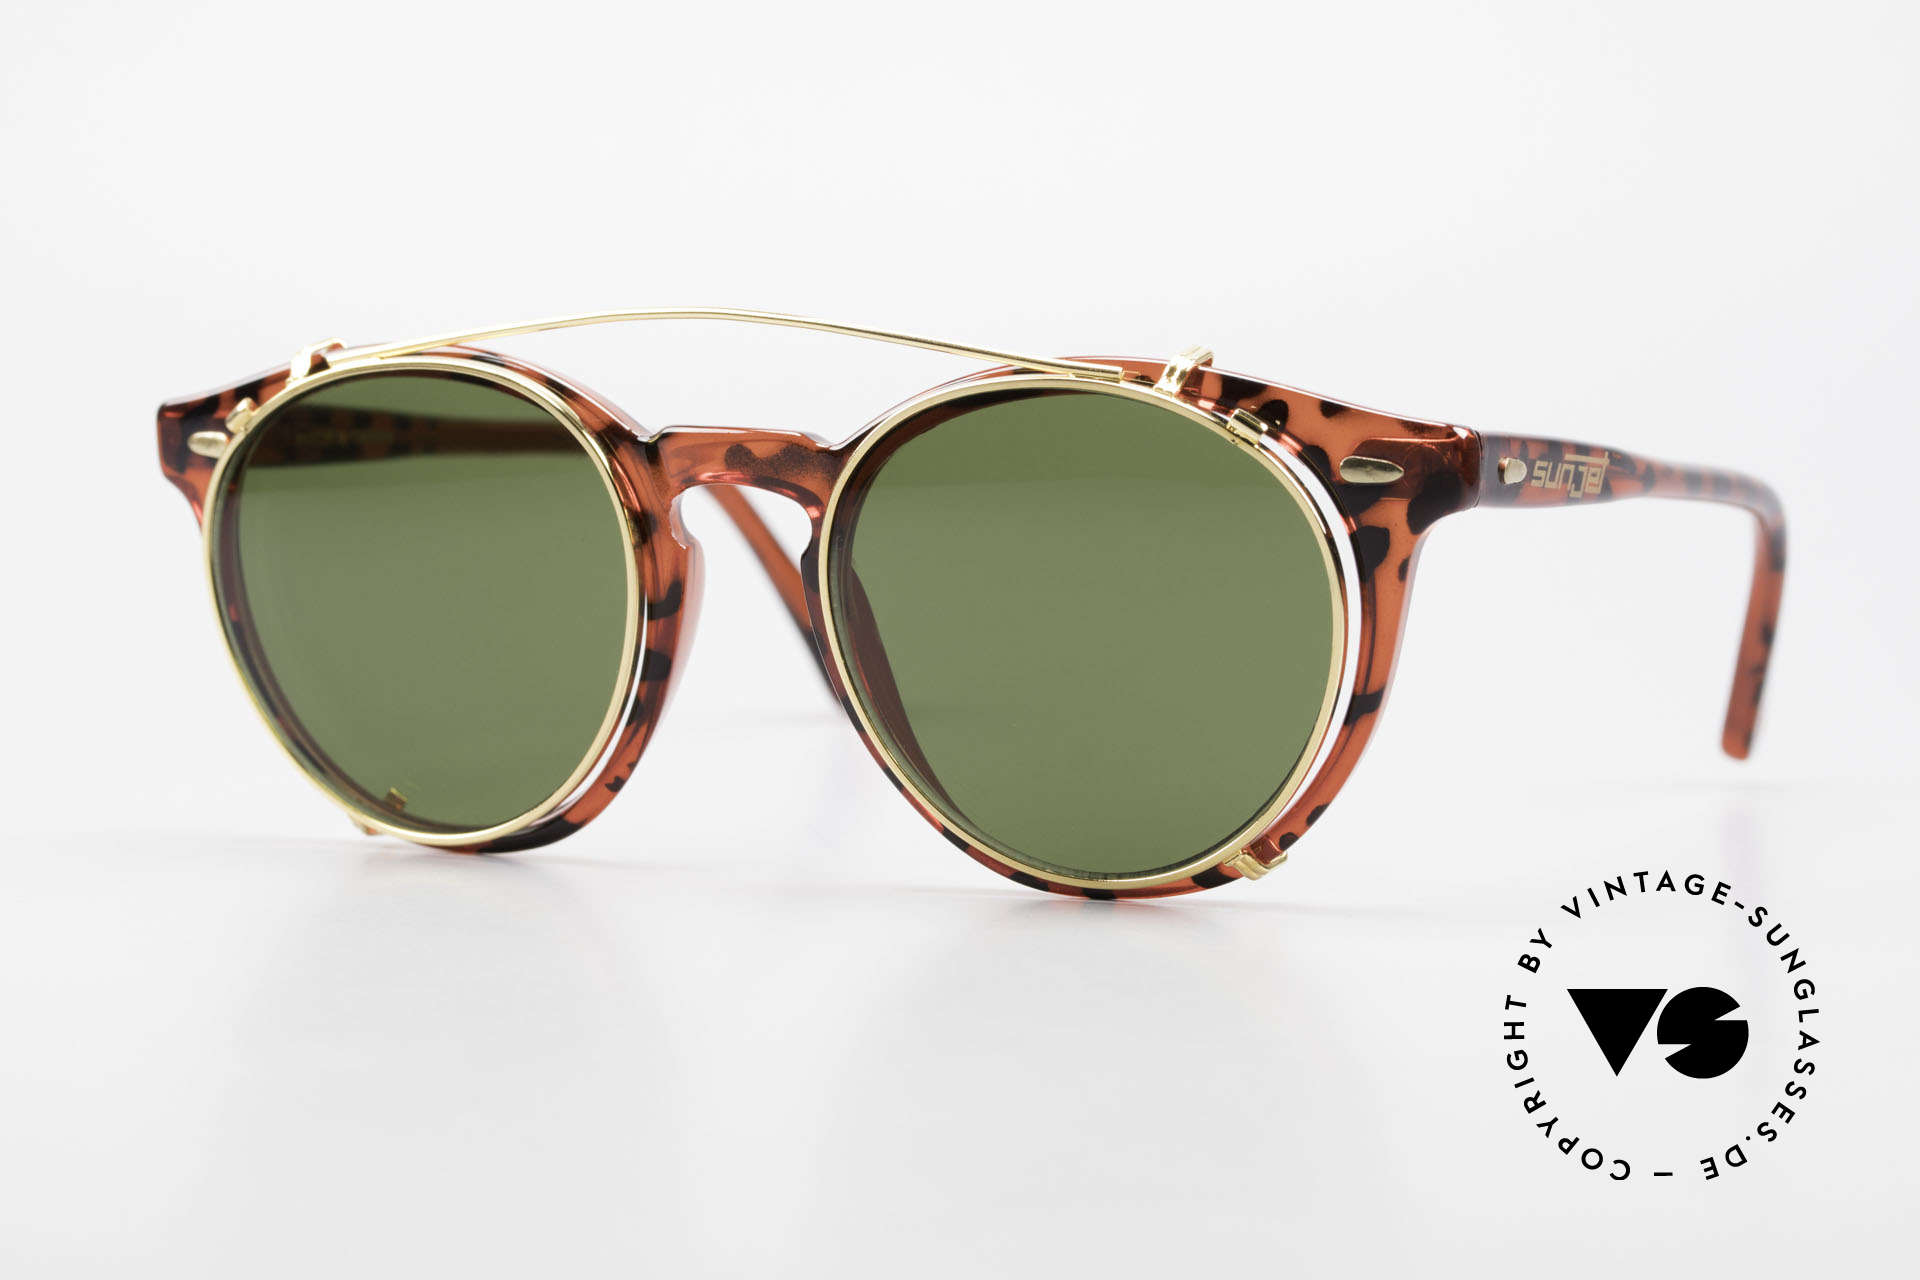 Carrera 5256 Clip Panto Frame Johnny Depp Style, timeless vintage Carrera Sunjet frame with sun clip, Made for Men and Women